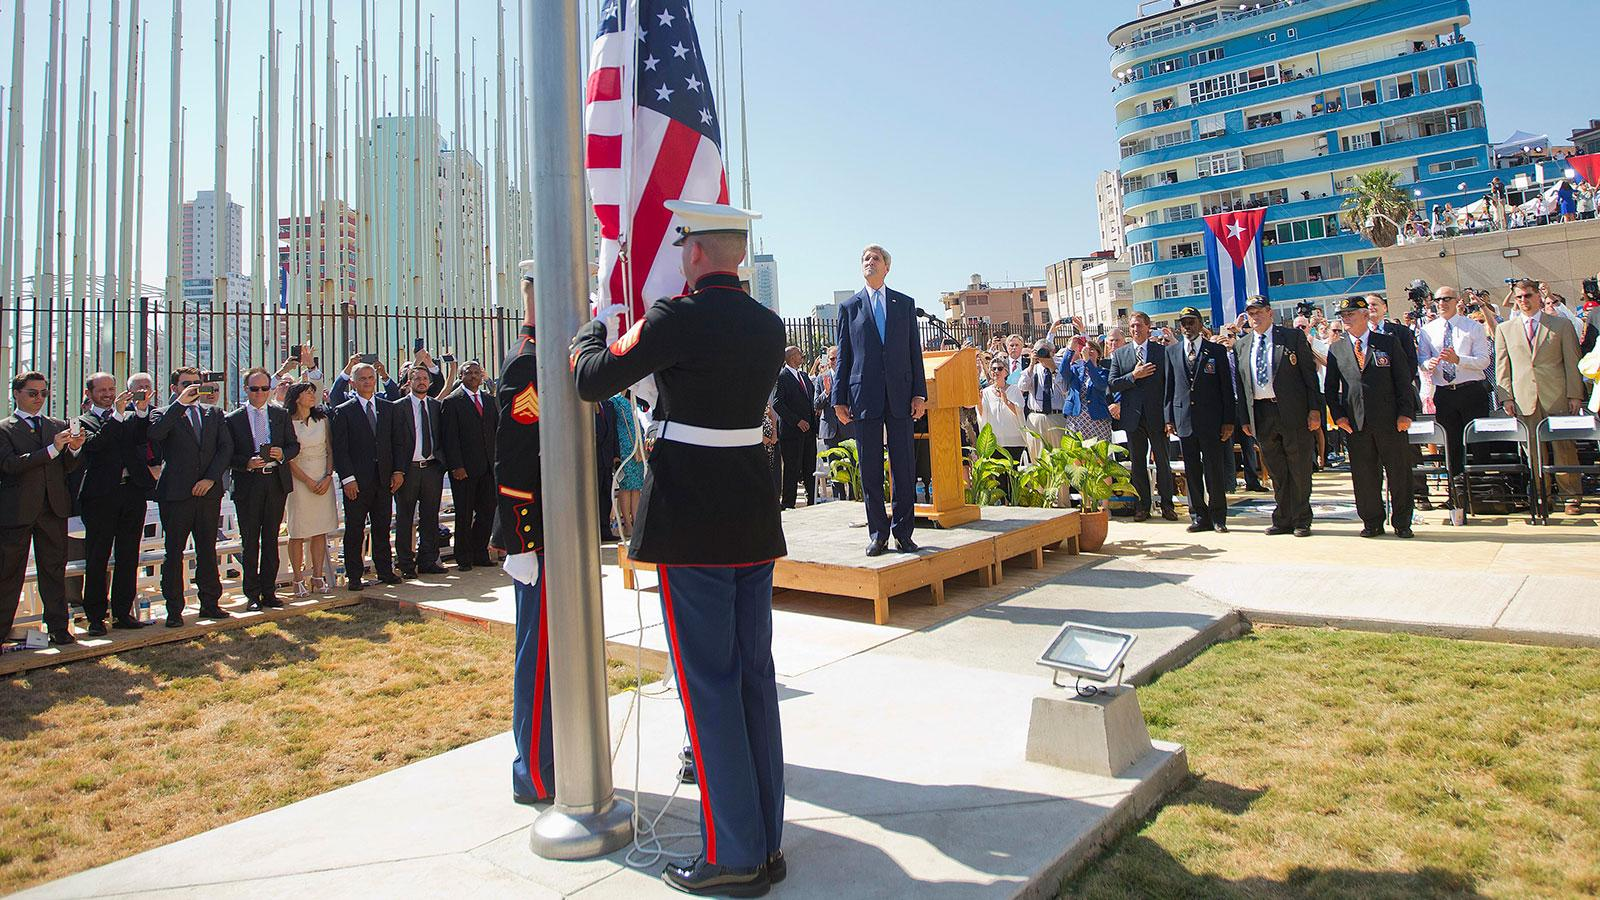 American Flag Raised At U.S. Embassy In Havana